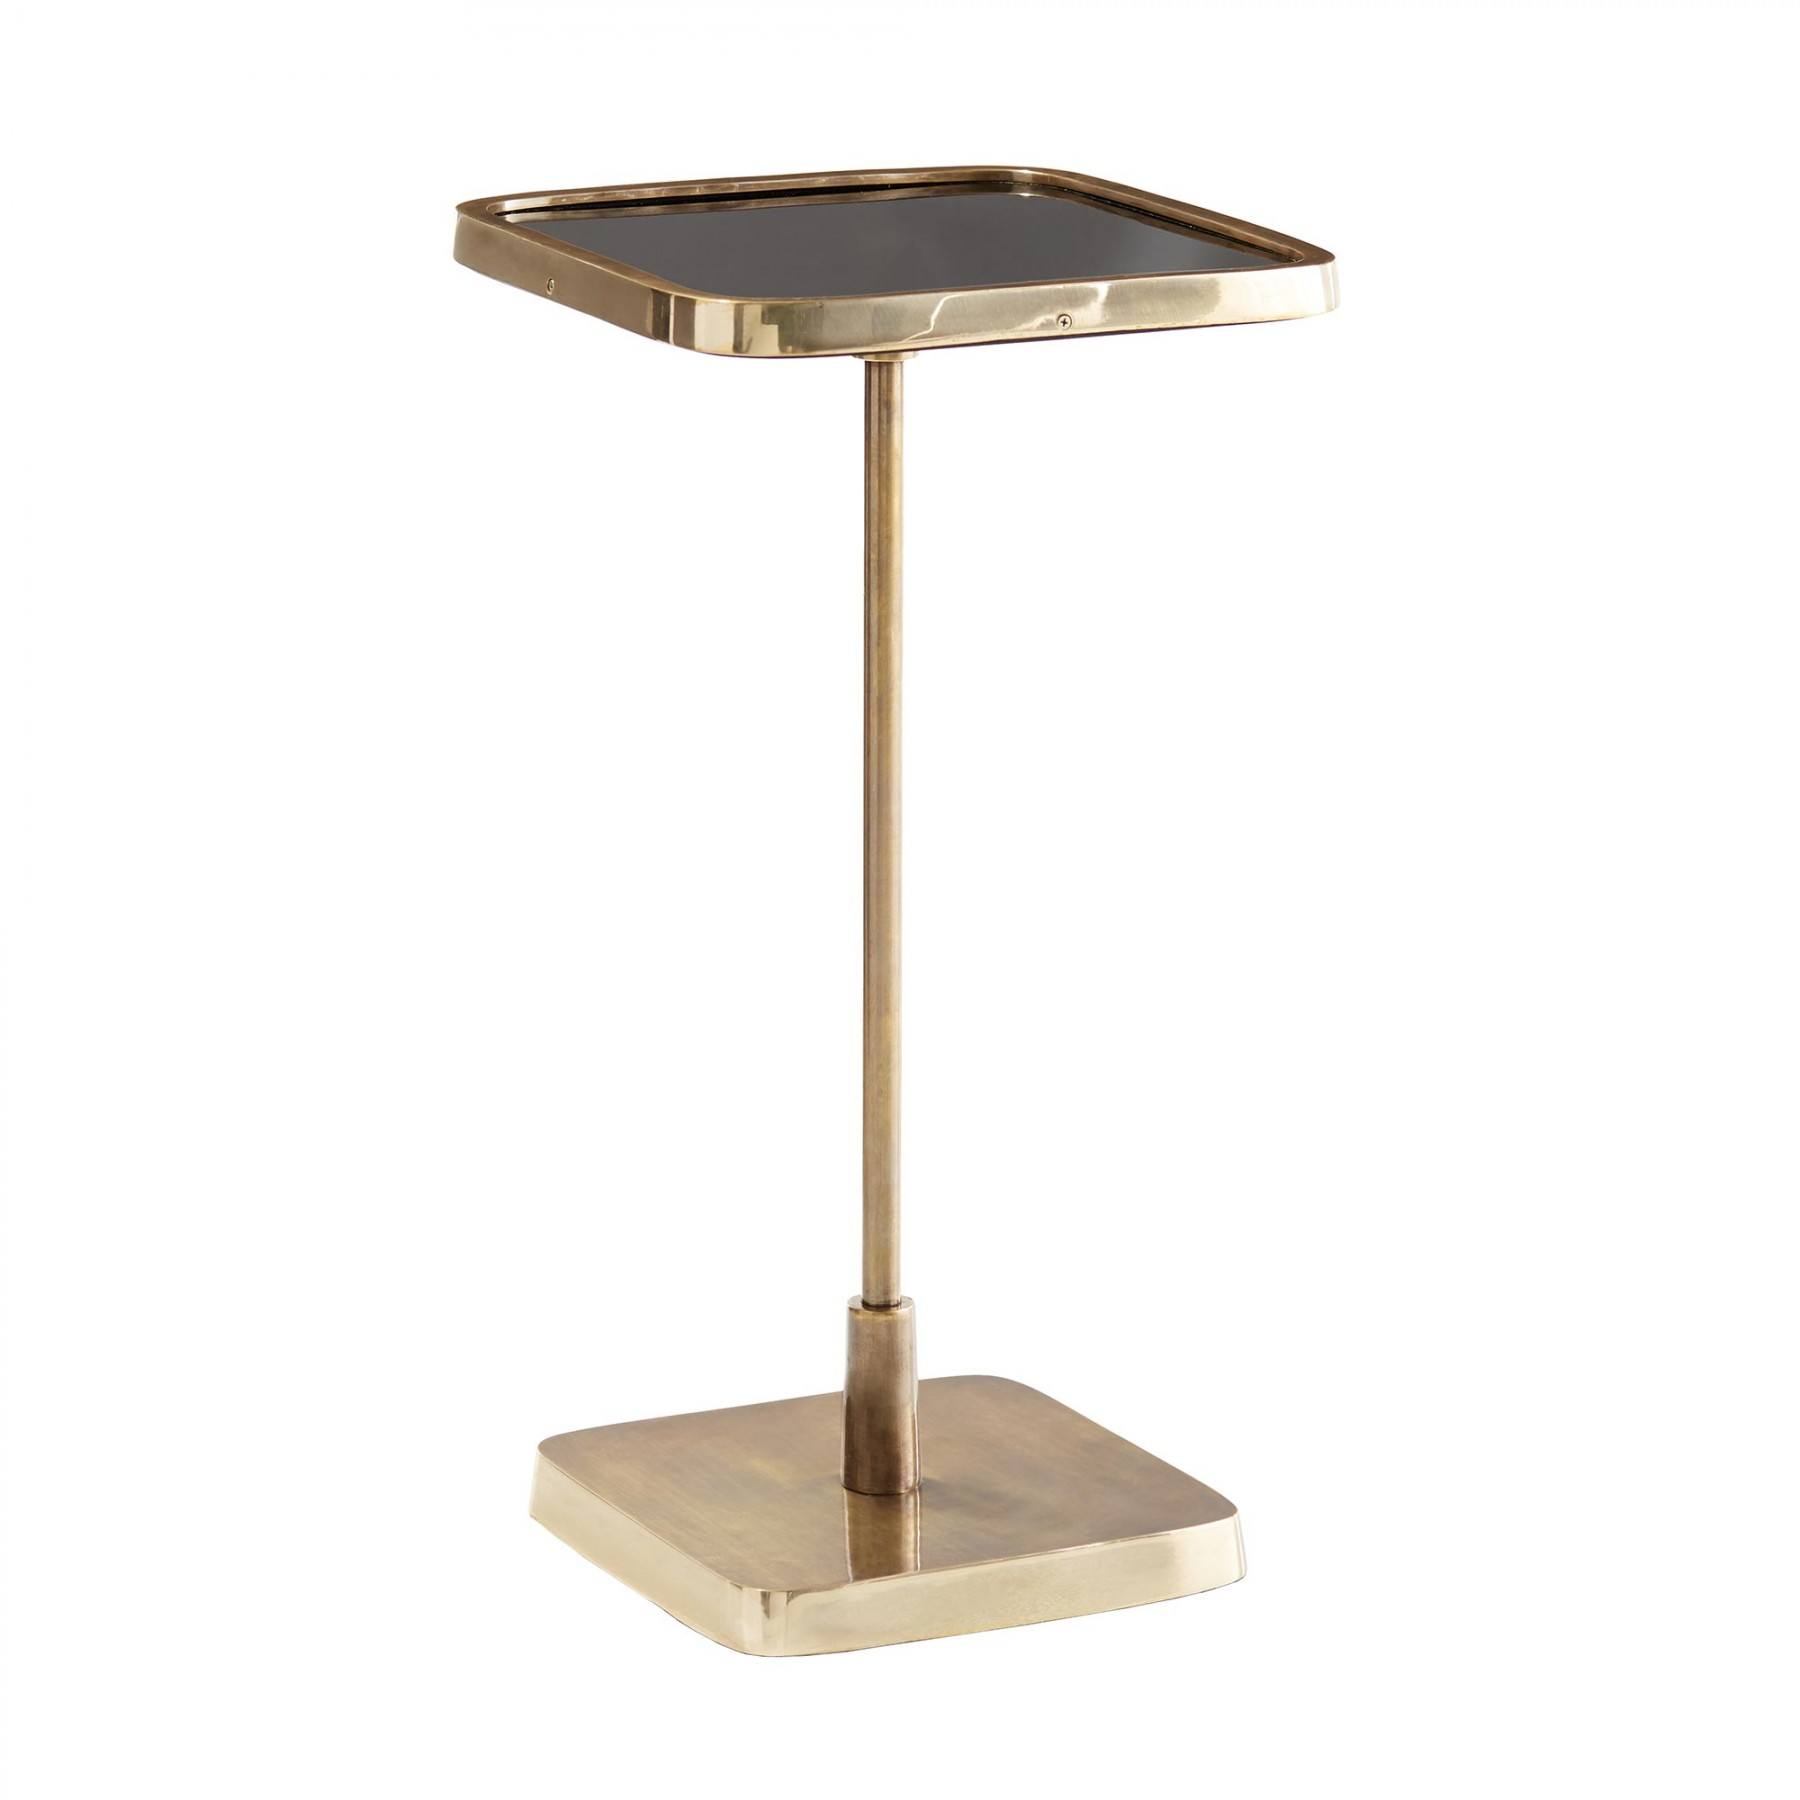 kaela square accent table with drawer outdoor coffee ice bucket dark brown wood end designs catalogue tiffany lamps lighted base white top side beach furniture target chairs